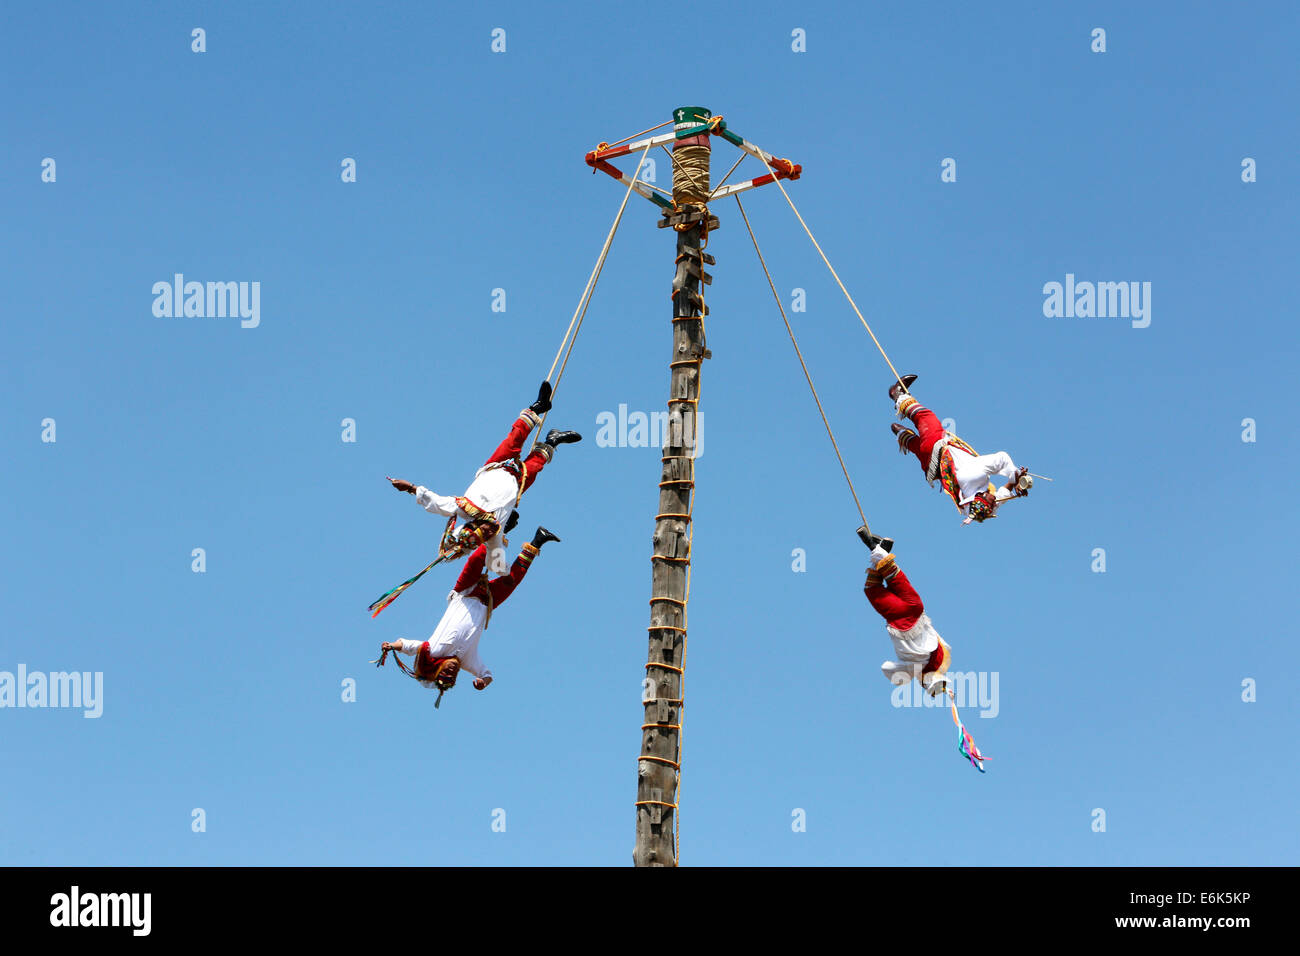 Danza del Volador, artists swinging on a pole, Teotihuacan, State of Mexico, Mexico - Stock Image